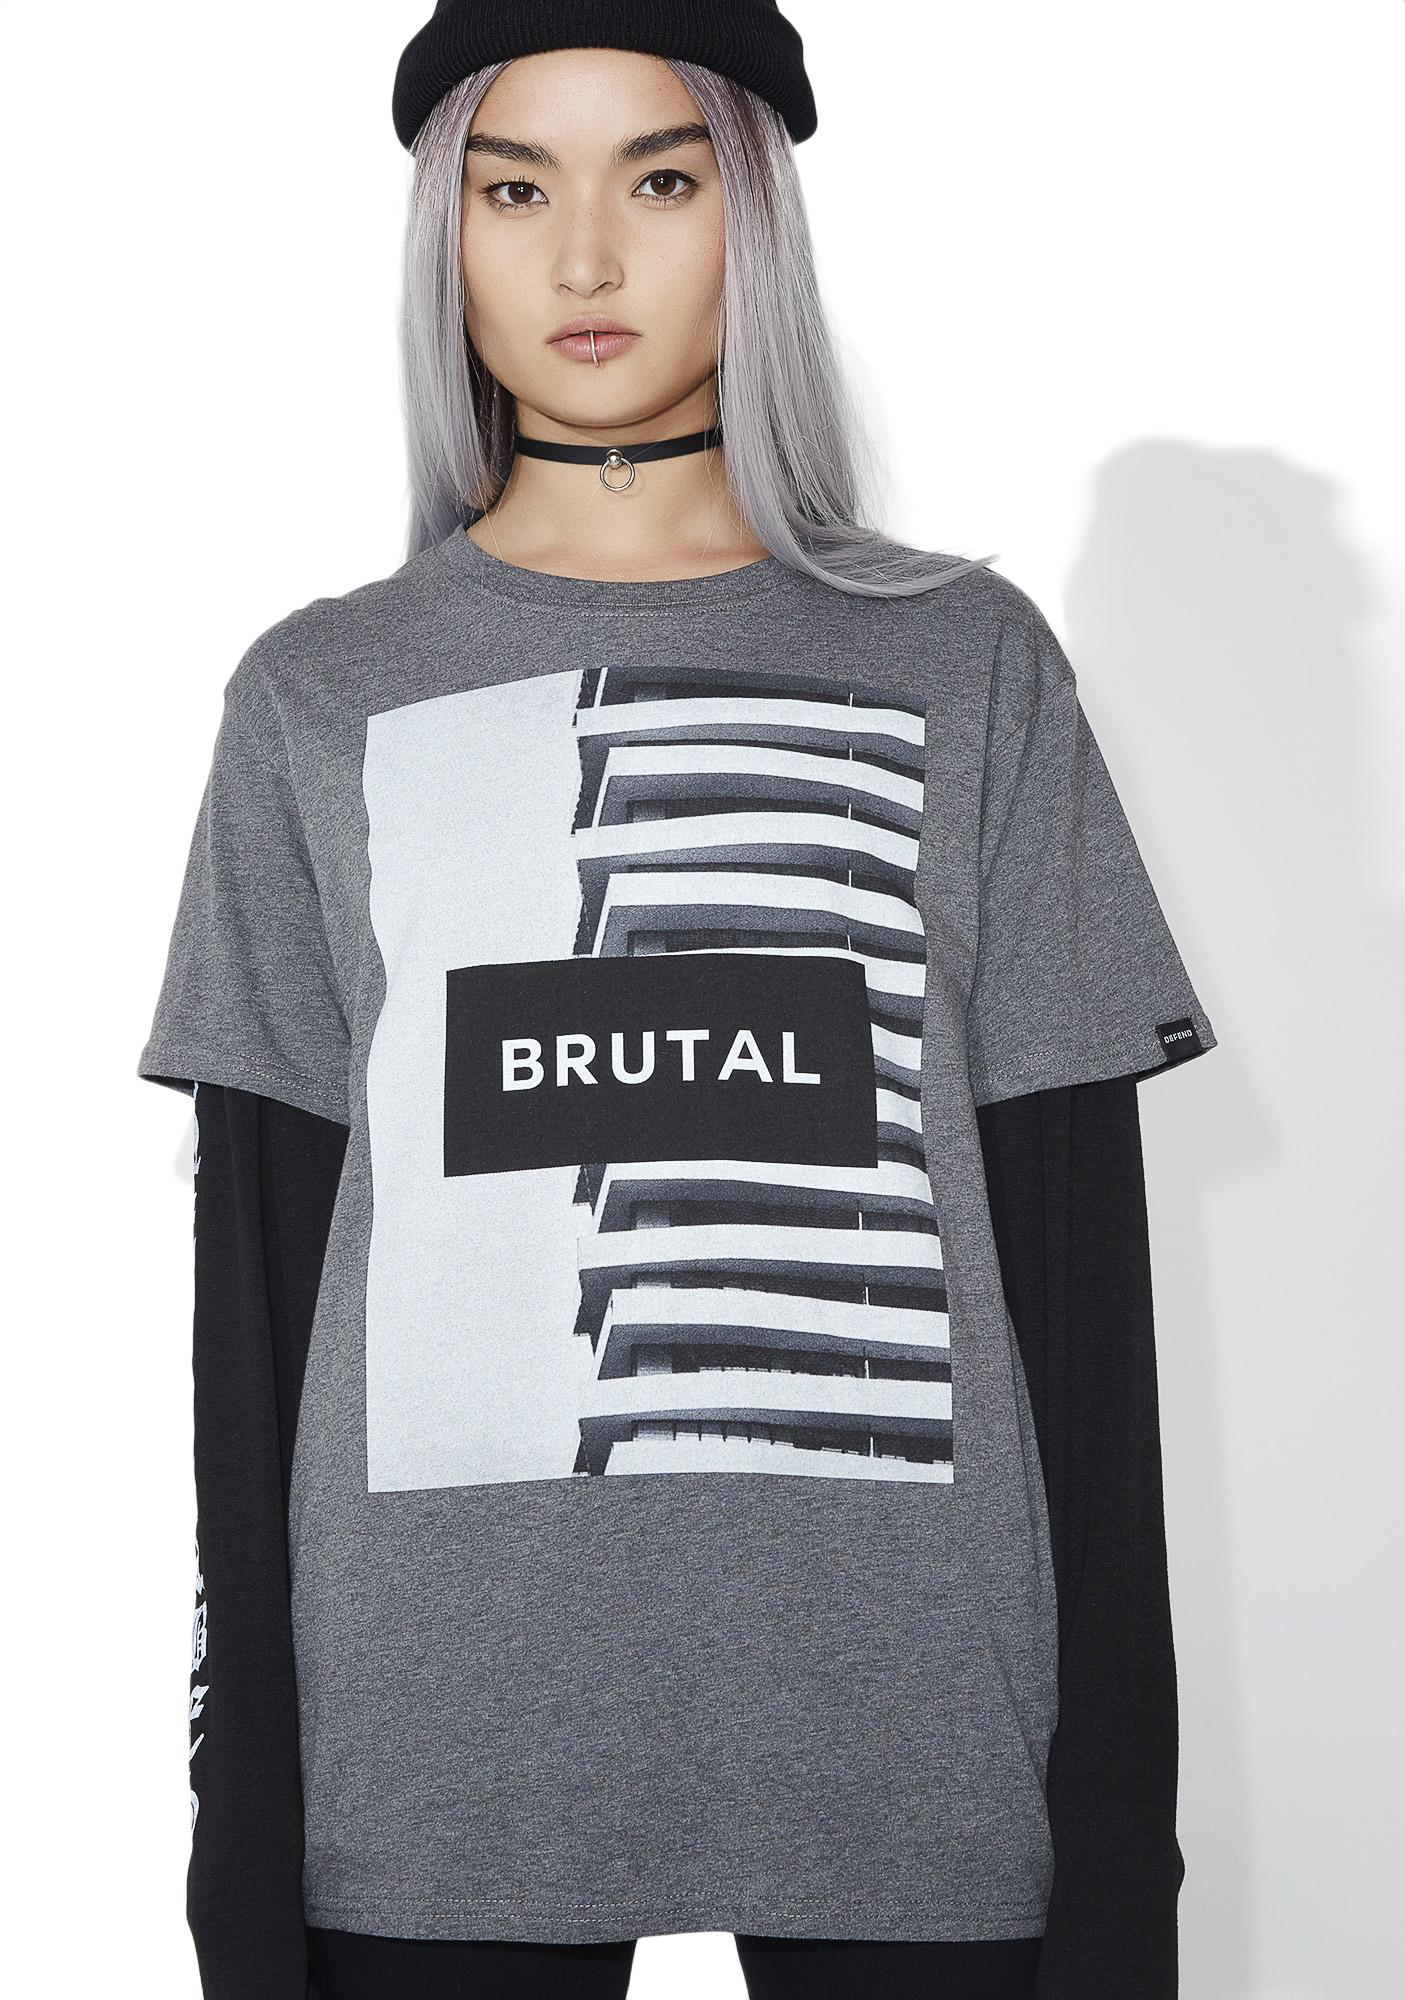 Defend Paris Brutal Tee